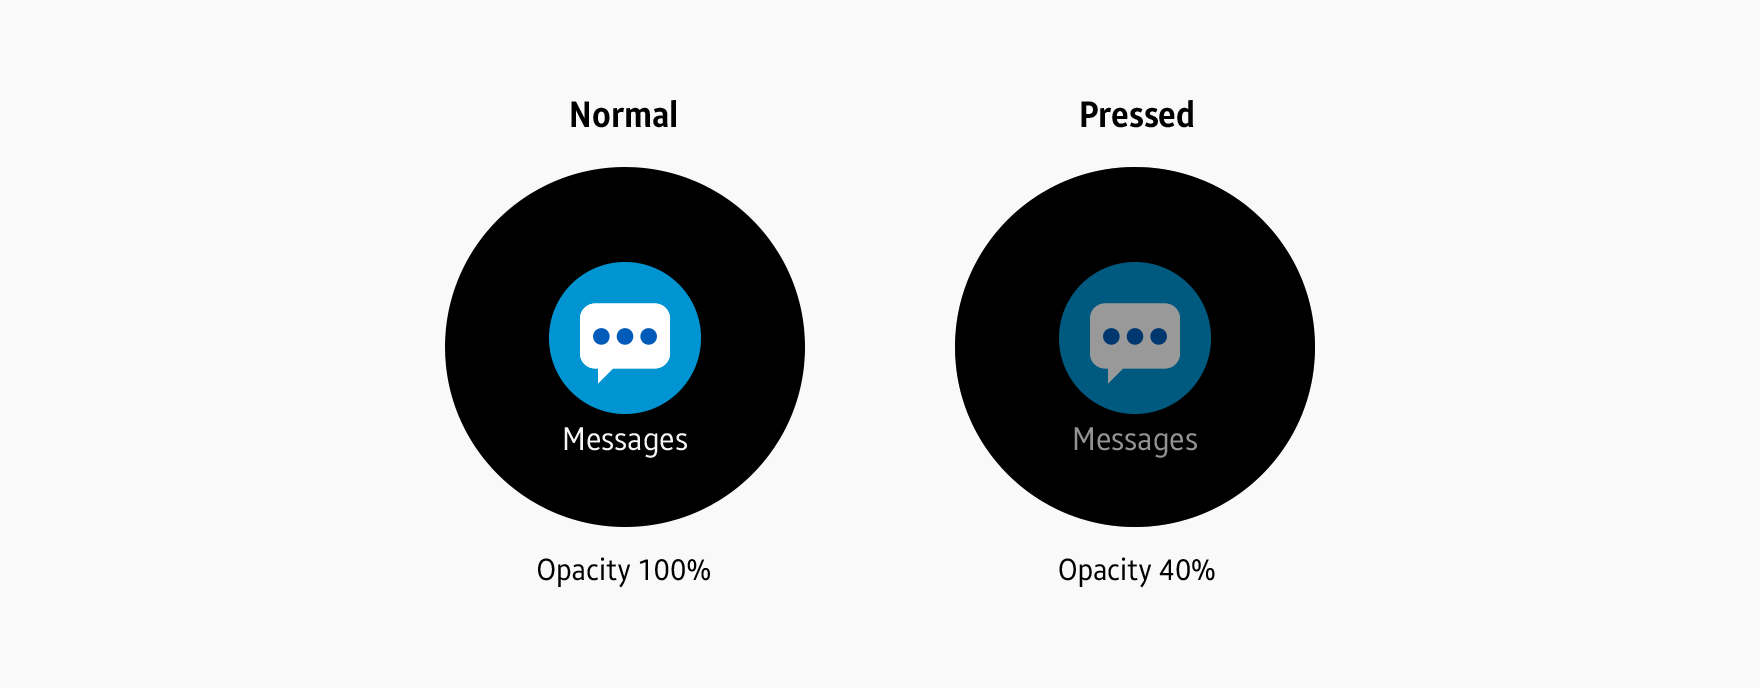 The opacity of the entire container is adjusted to 40% when users press a colored icon.